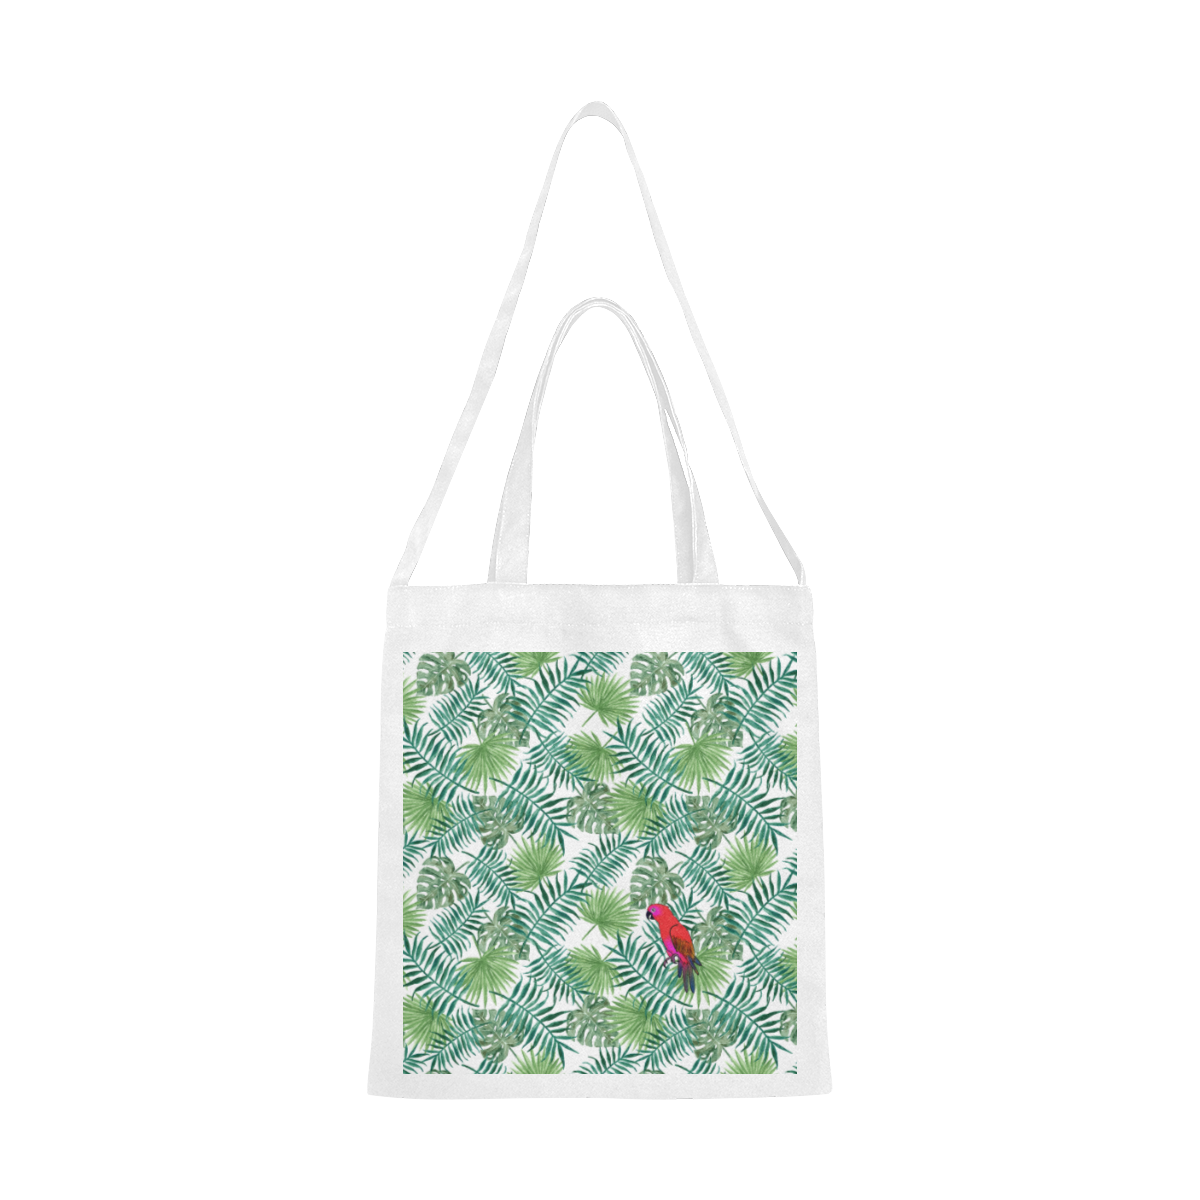 Parrot And Leaves Canvas Tote Bag/Medium (Model 1701)